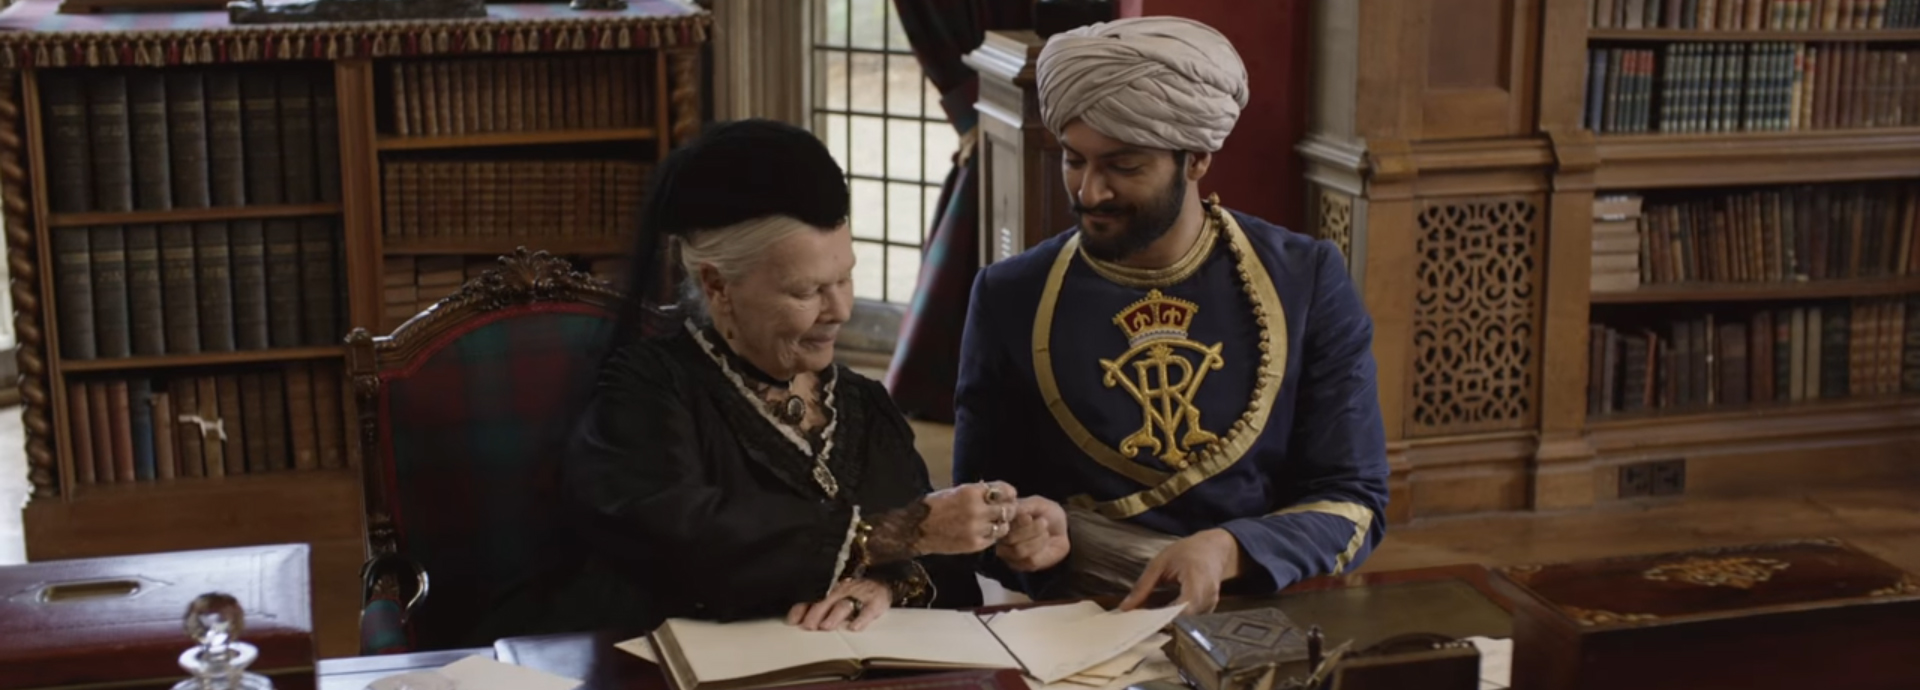 Victoria and Abdul. Image Credit: Universal.